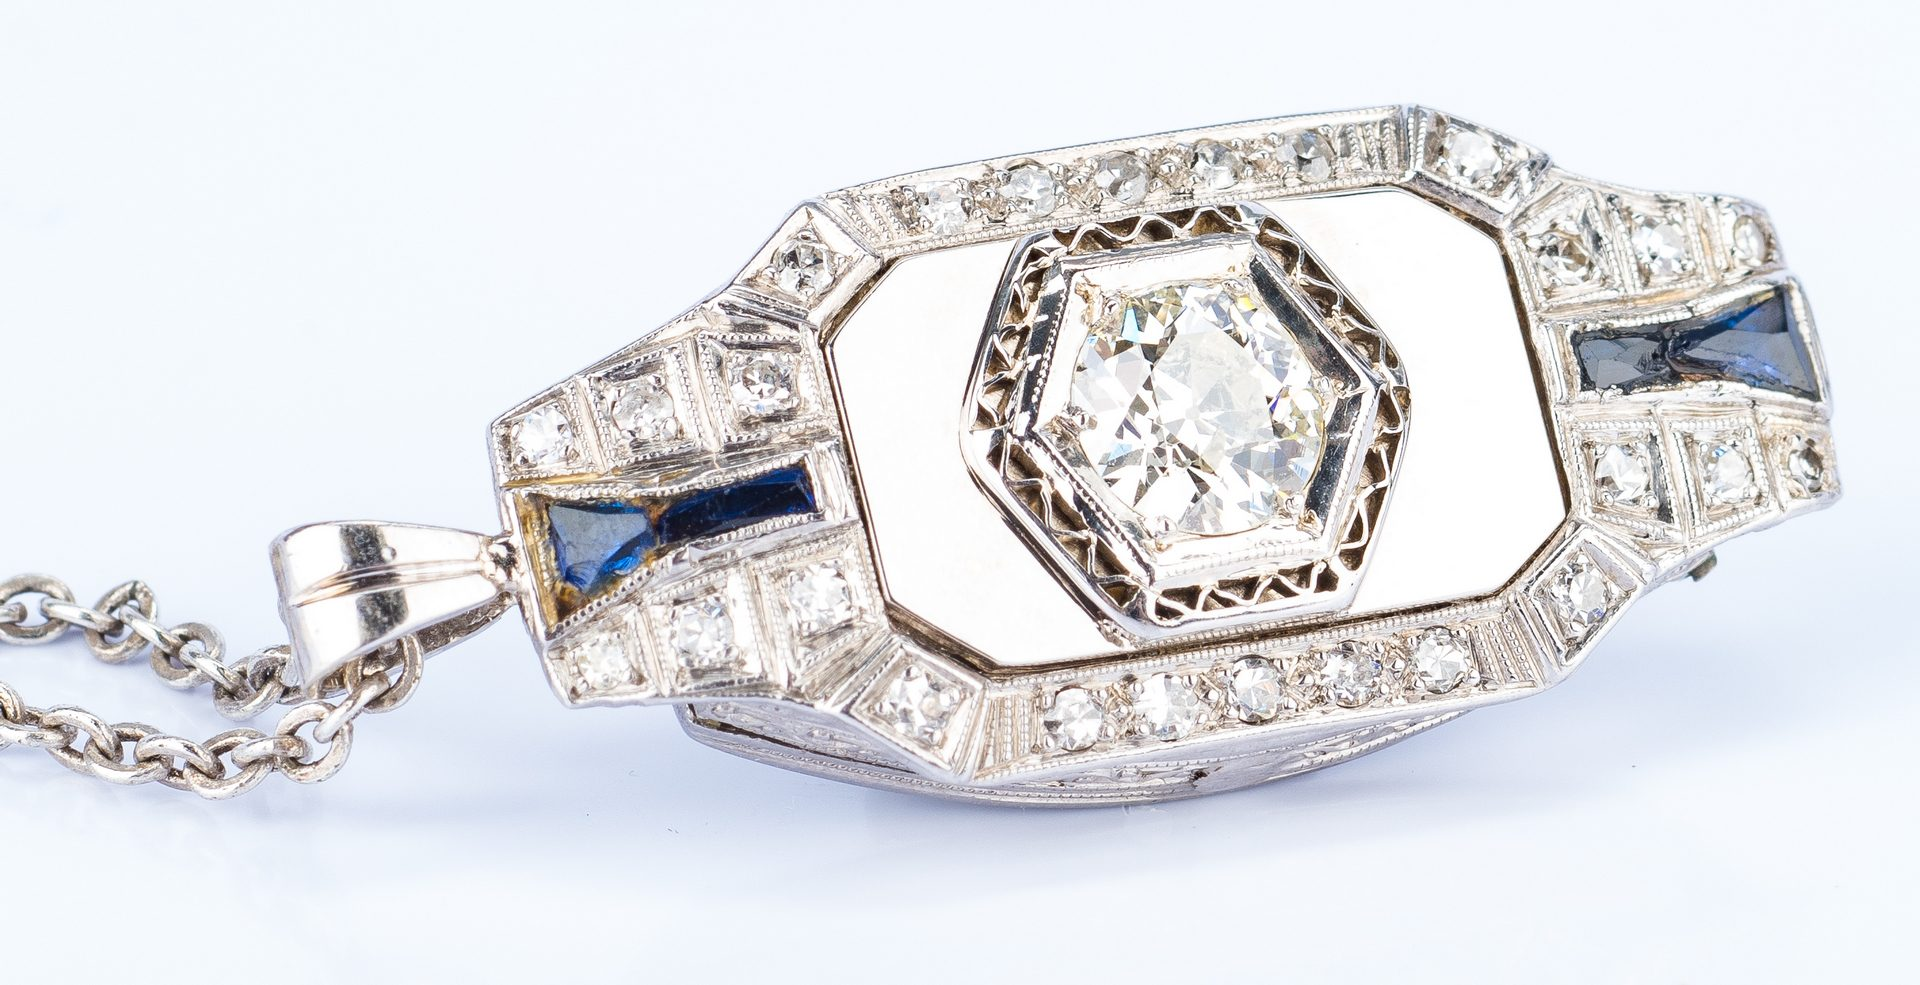 Lot 23: Art Deco 1 ct OMC Diamond Pendant